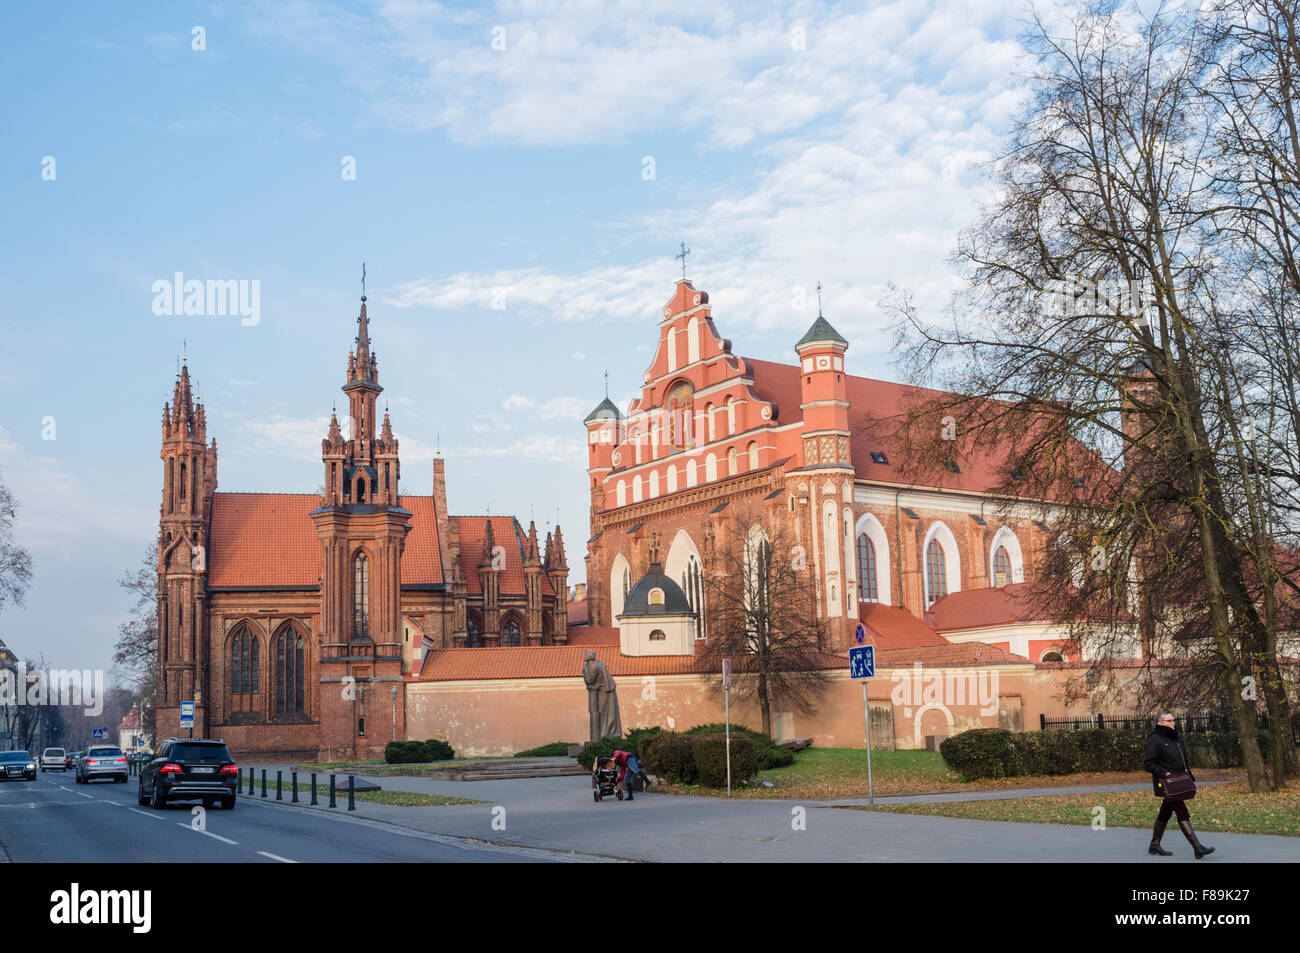 Church of St. Anne, Vilnius, Lithuania - Stock Image